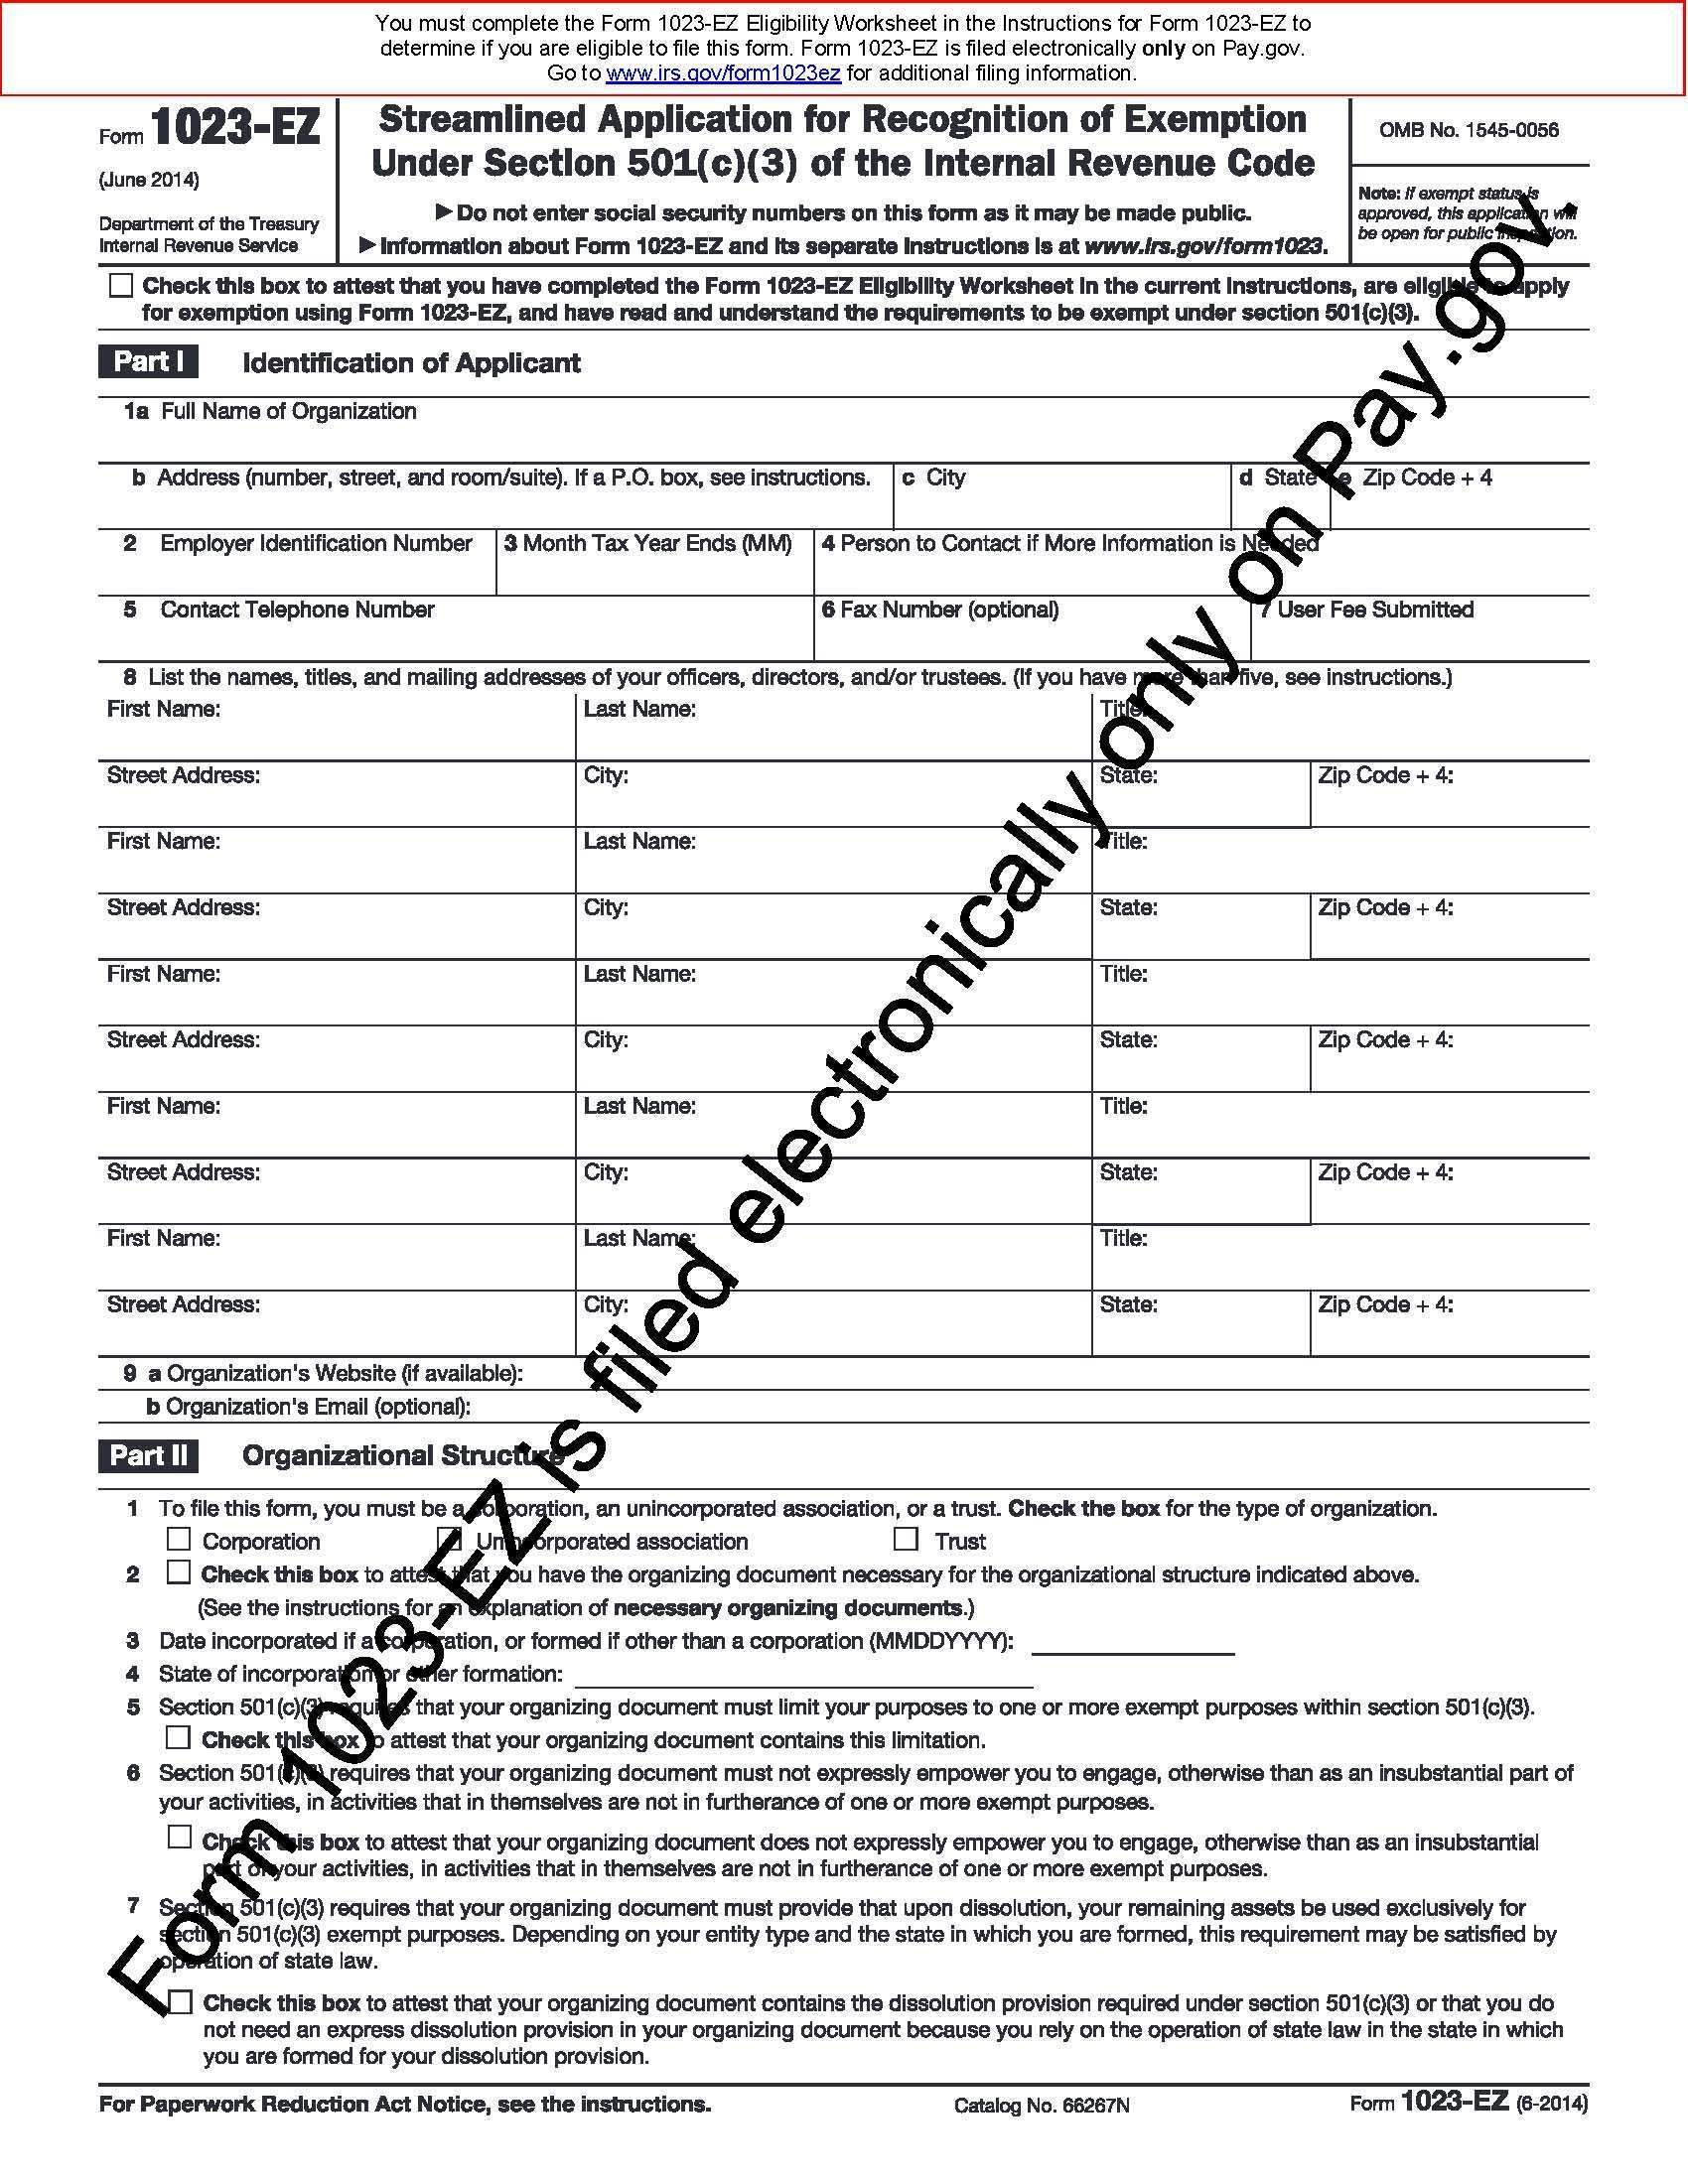 Irs 501c3 Application Form 1023